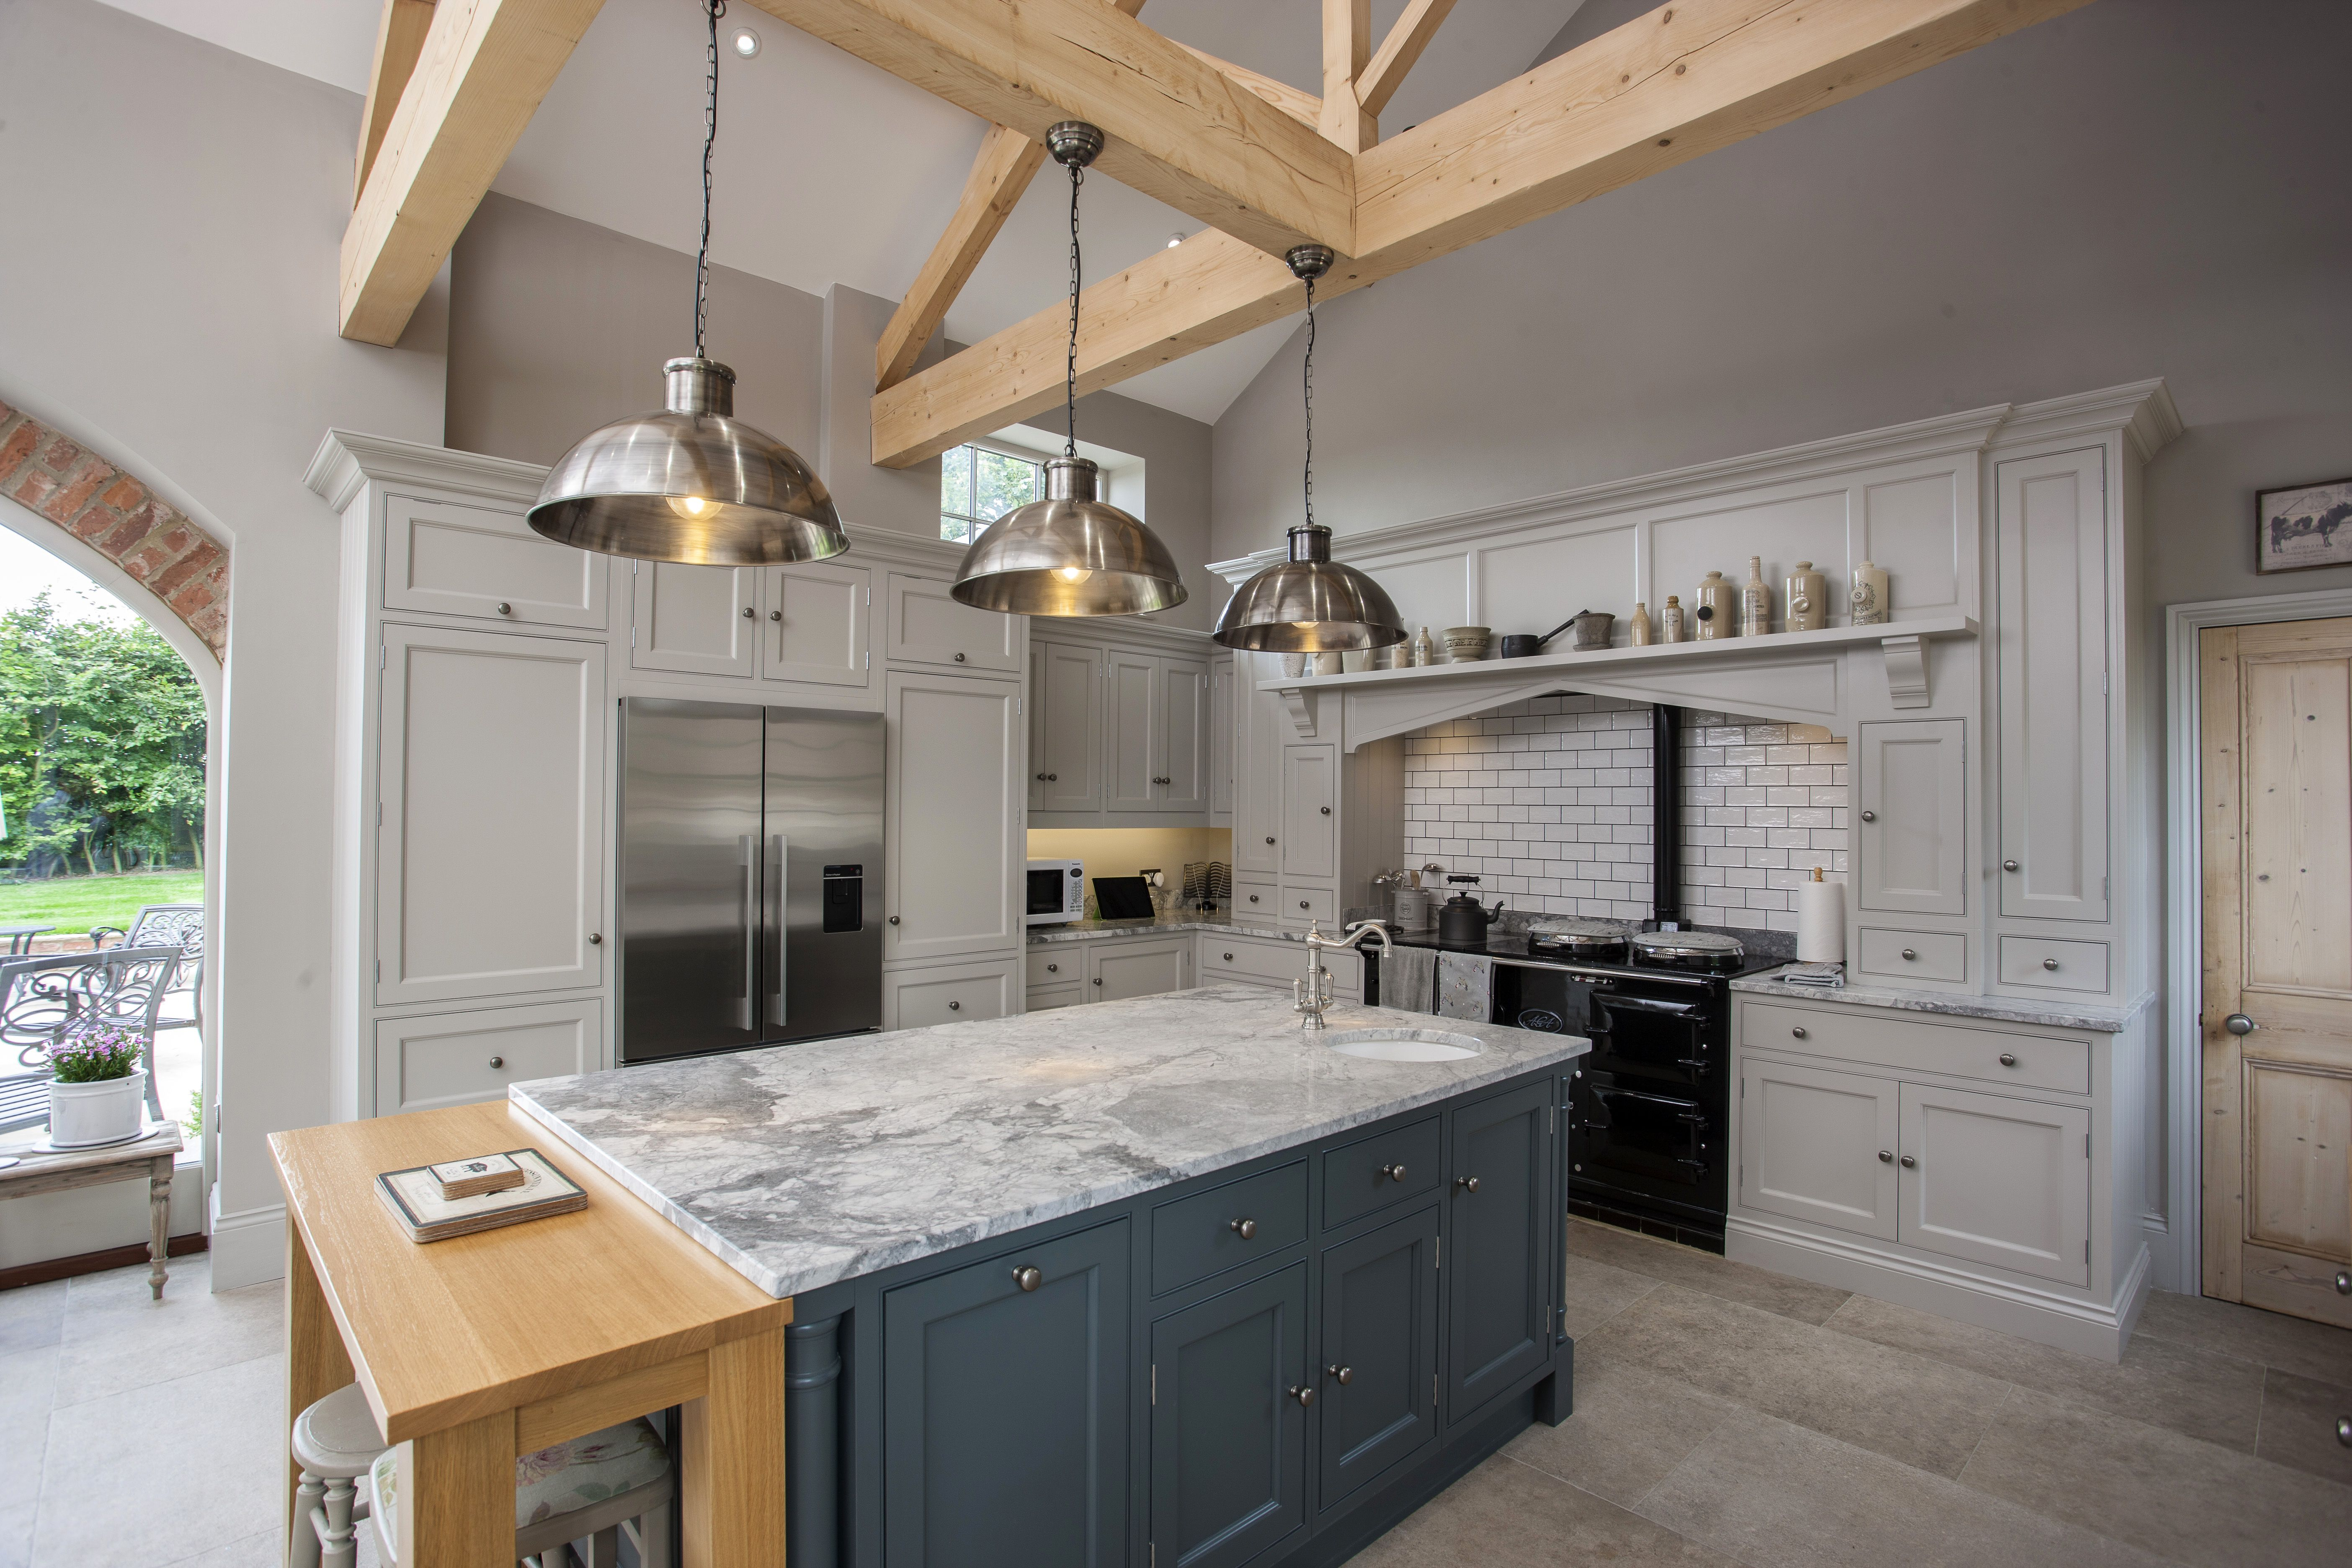 Best We Painted This Beautiful Converted Barn In Farrow Ball 400 x 300